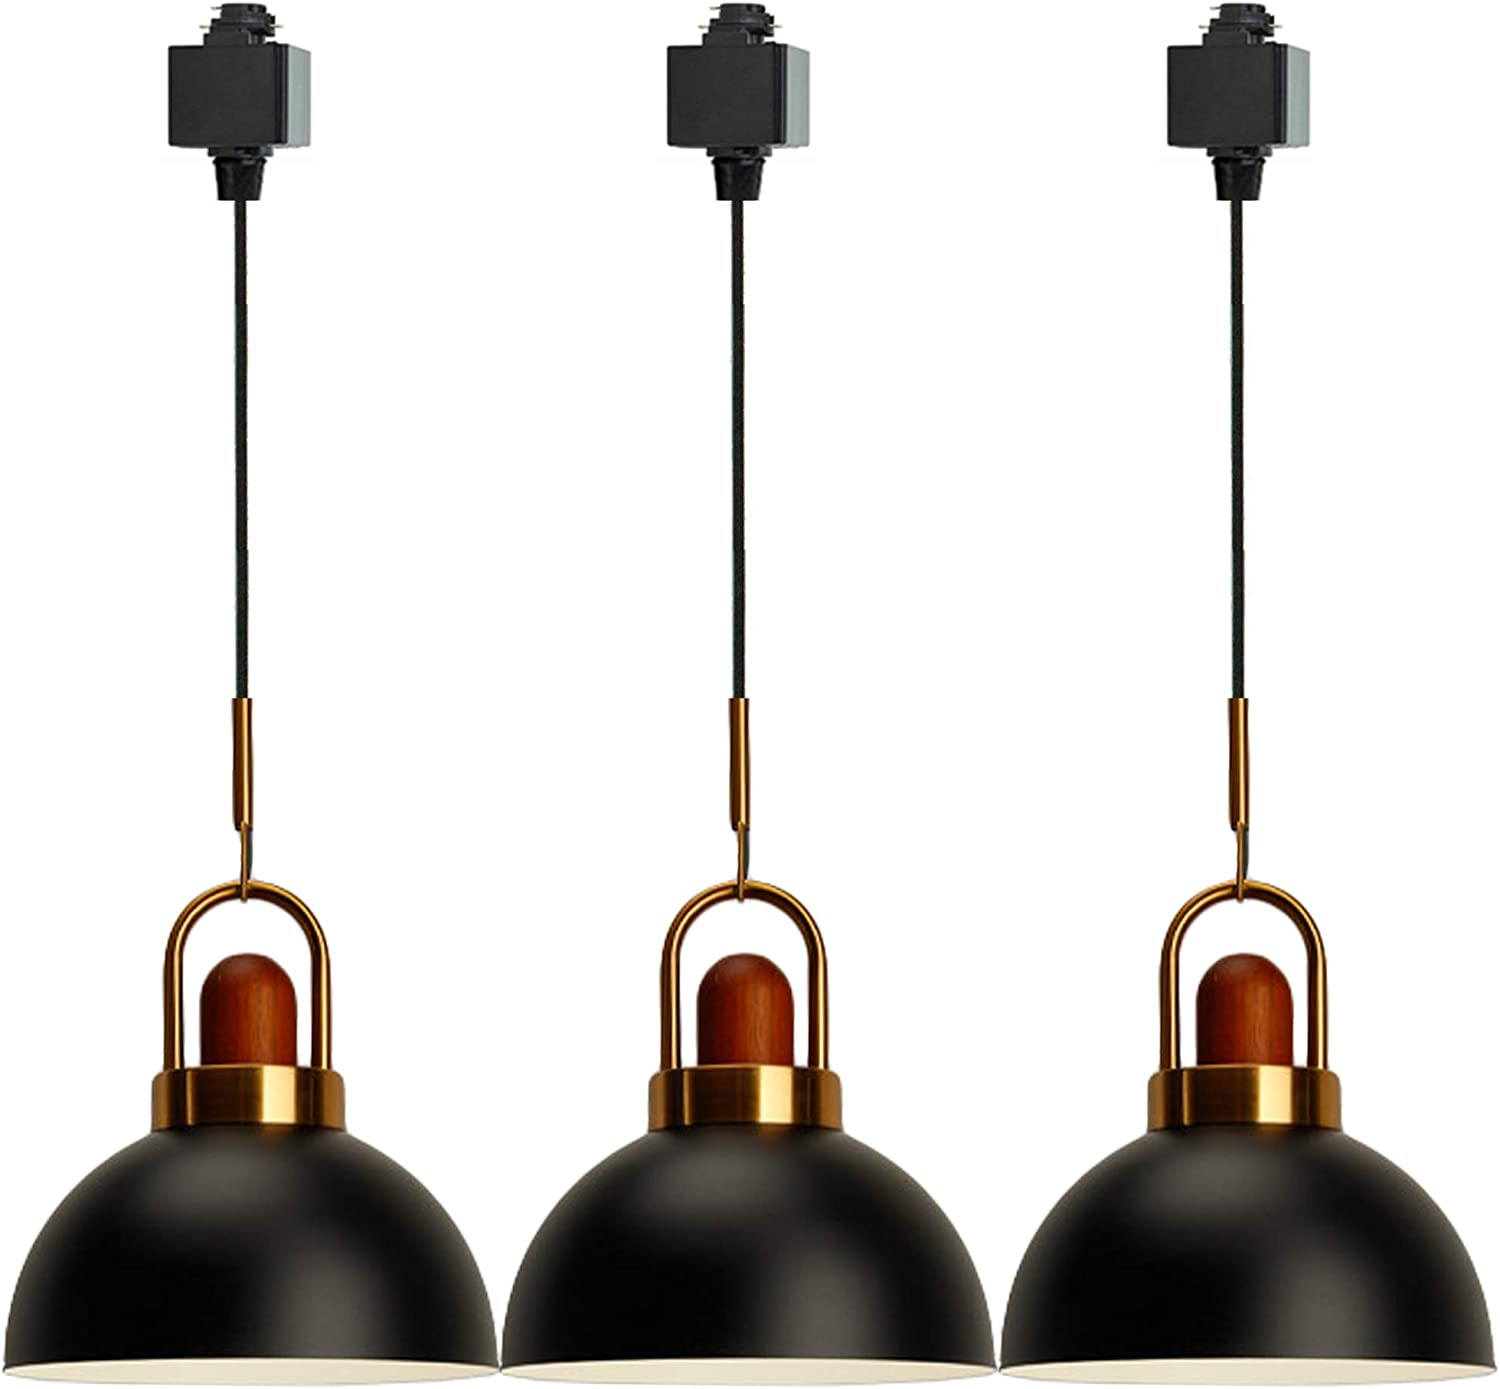 SKIVTGLAMP Wooden Iron Brass Handle Light Socket H-T E26 Clearance At the price SALE Limited time Pendant